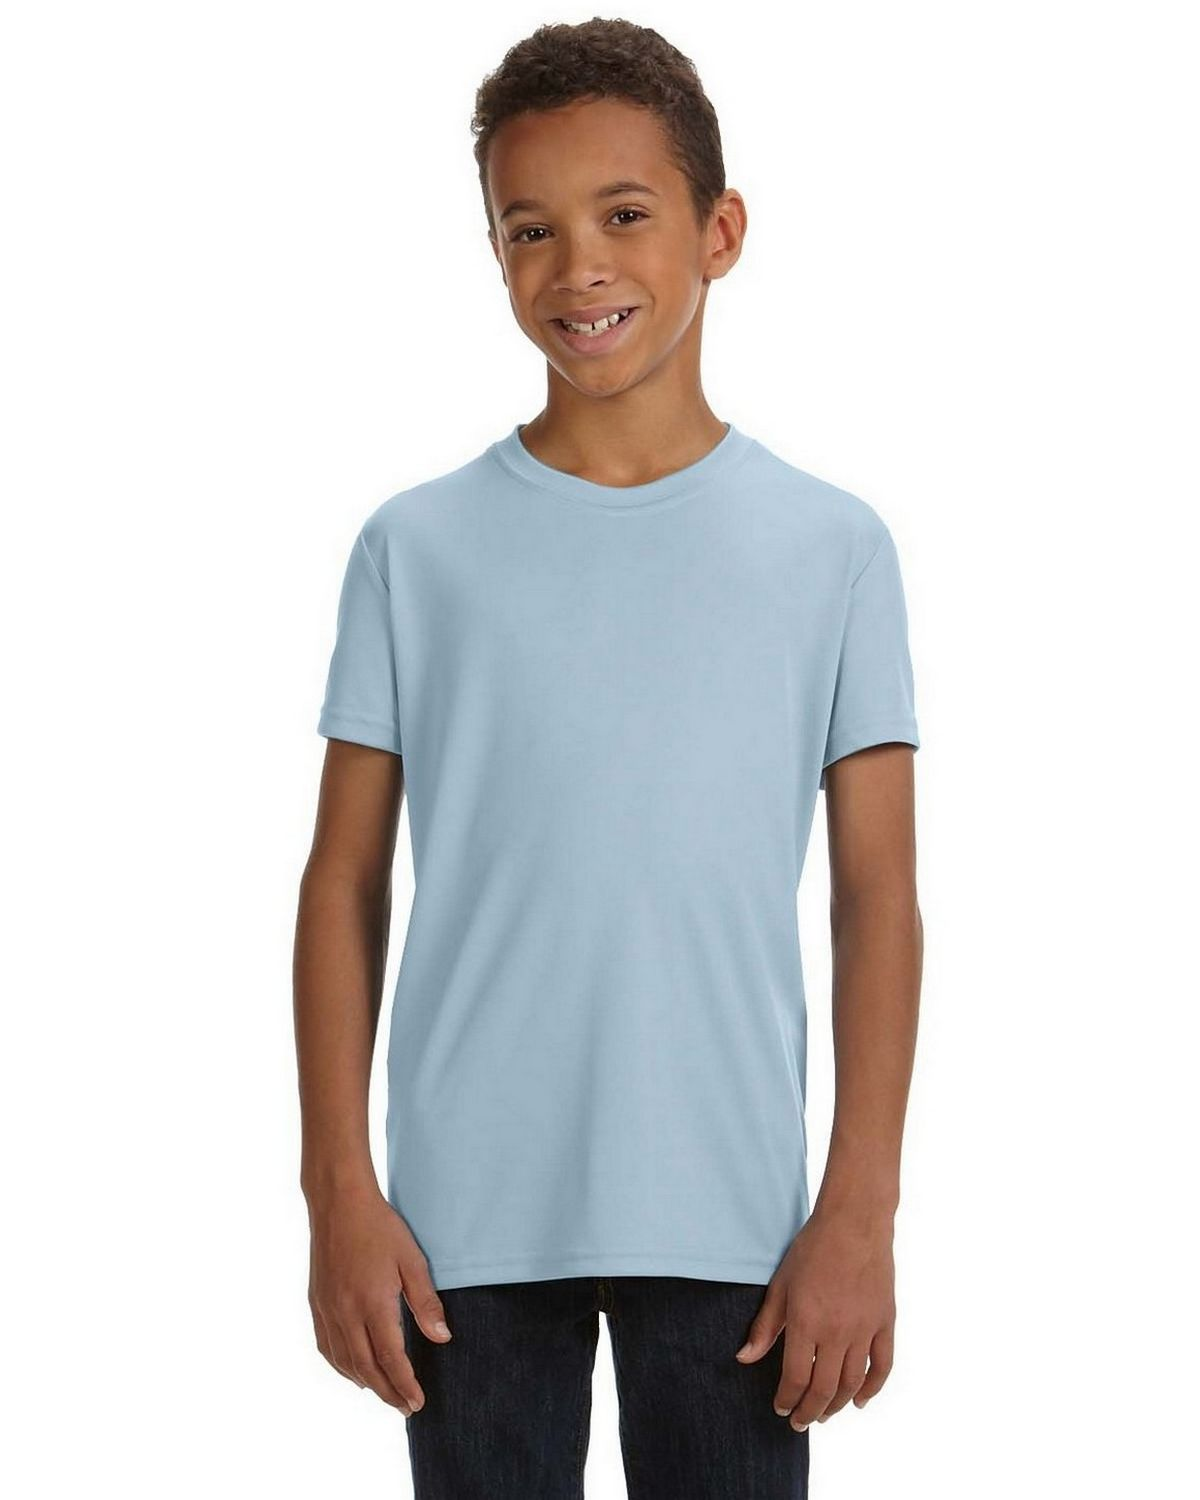 All Sport Y1009 Youth Performance Short Sleeve T Shirt - Sport Light Blue - XS Y1009